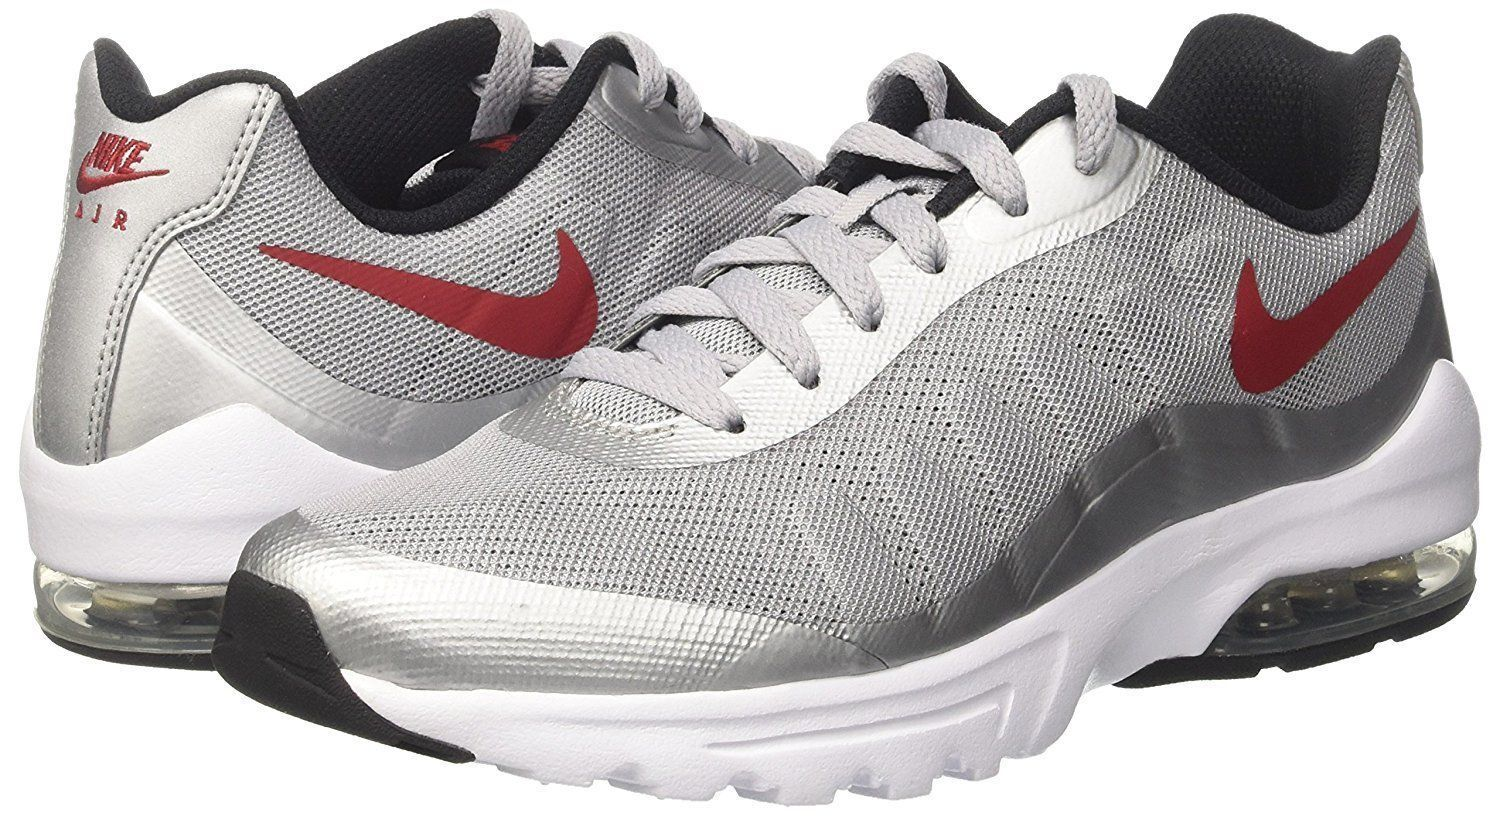 Men's Nike Air Max Invigor Wolf Grey/Red/Black/White Sizes 8-12 NIB 749680-004